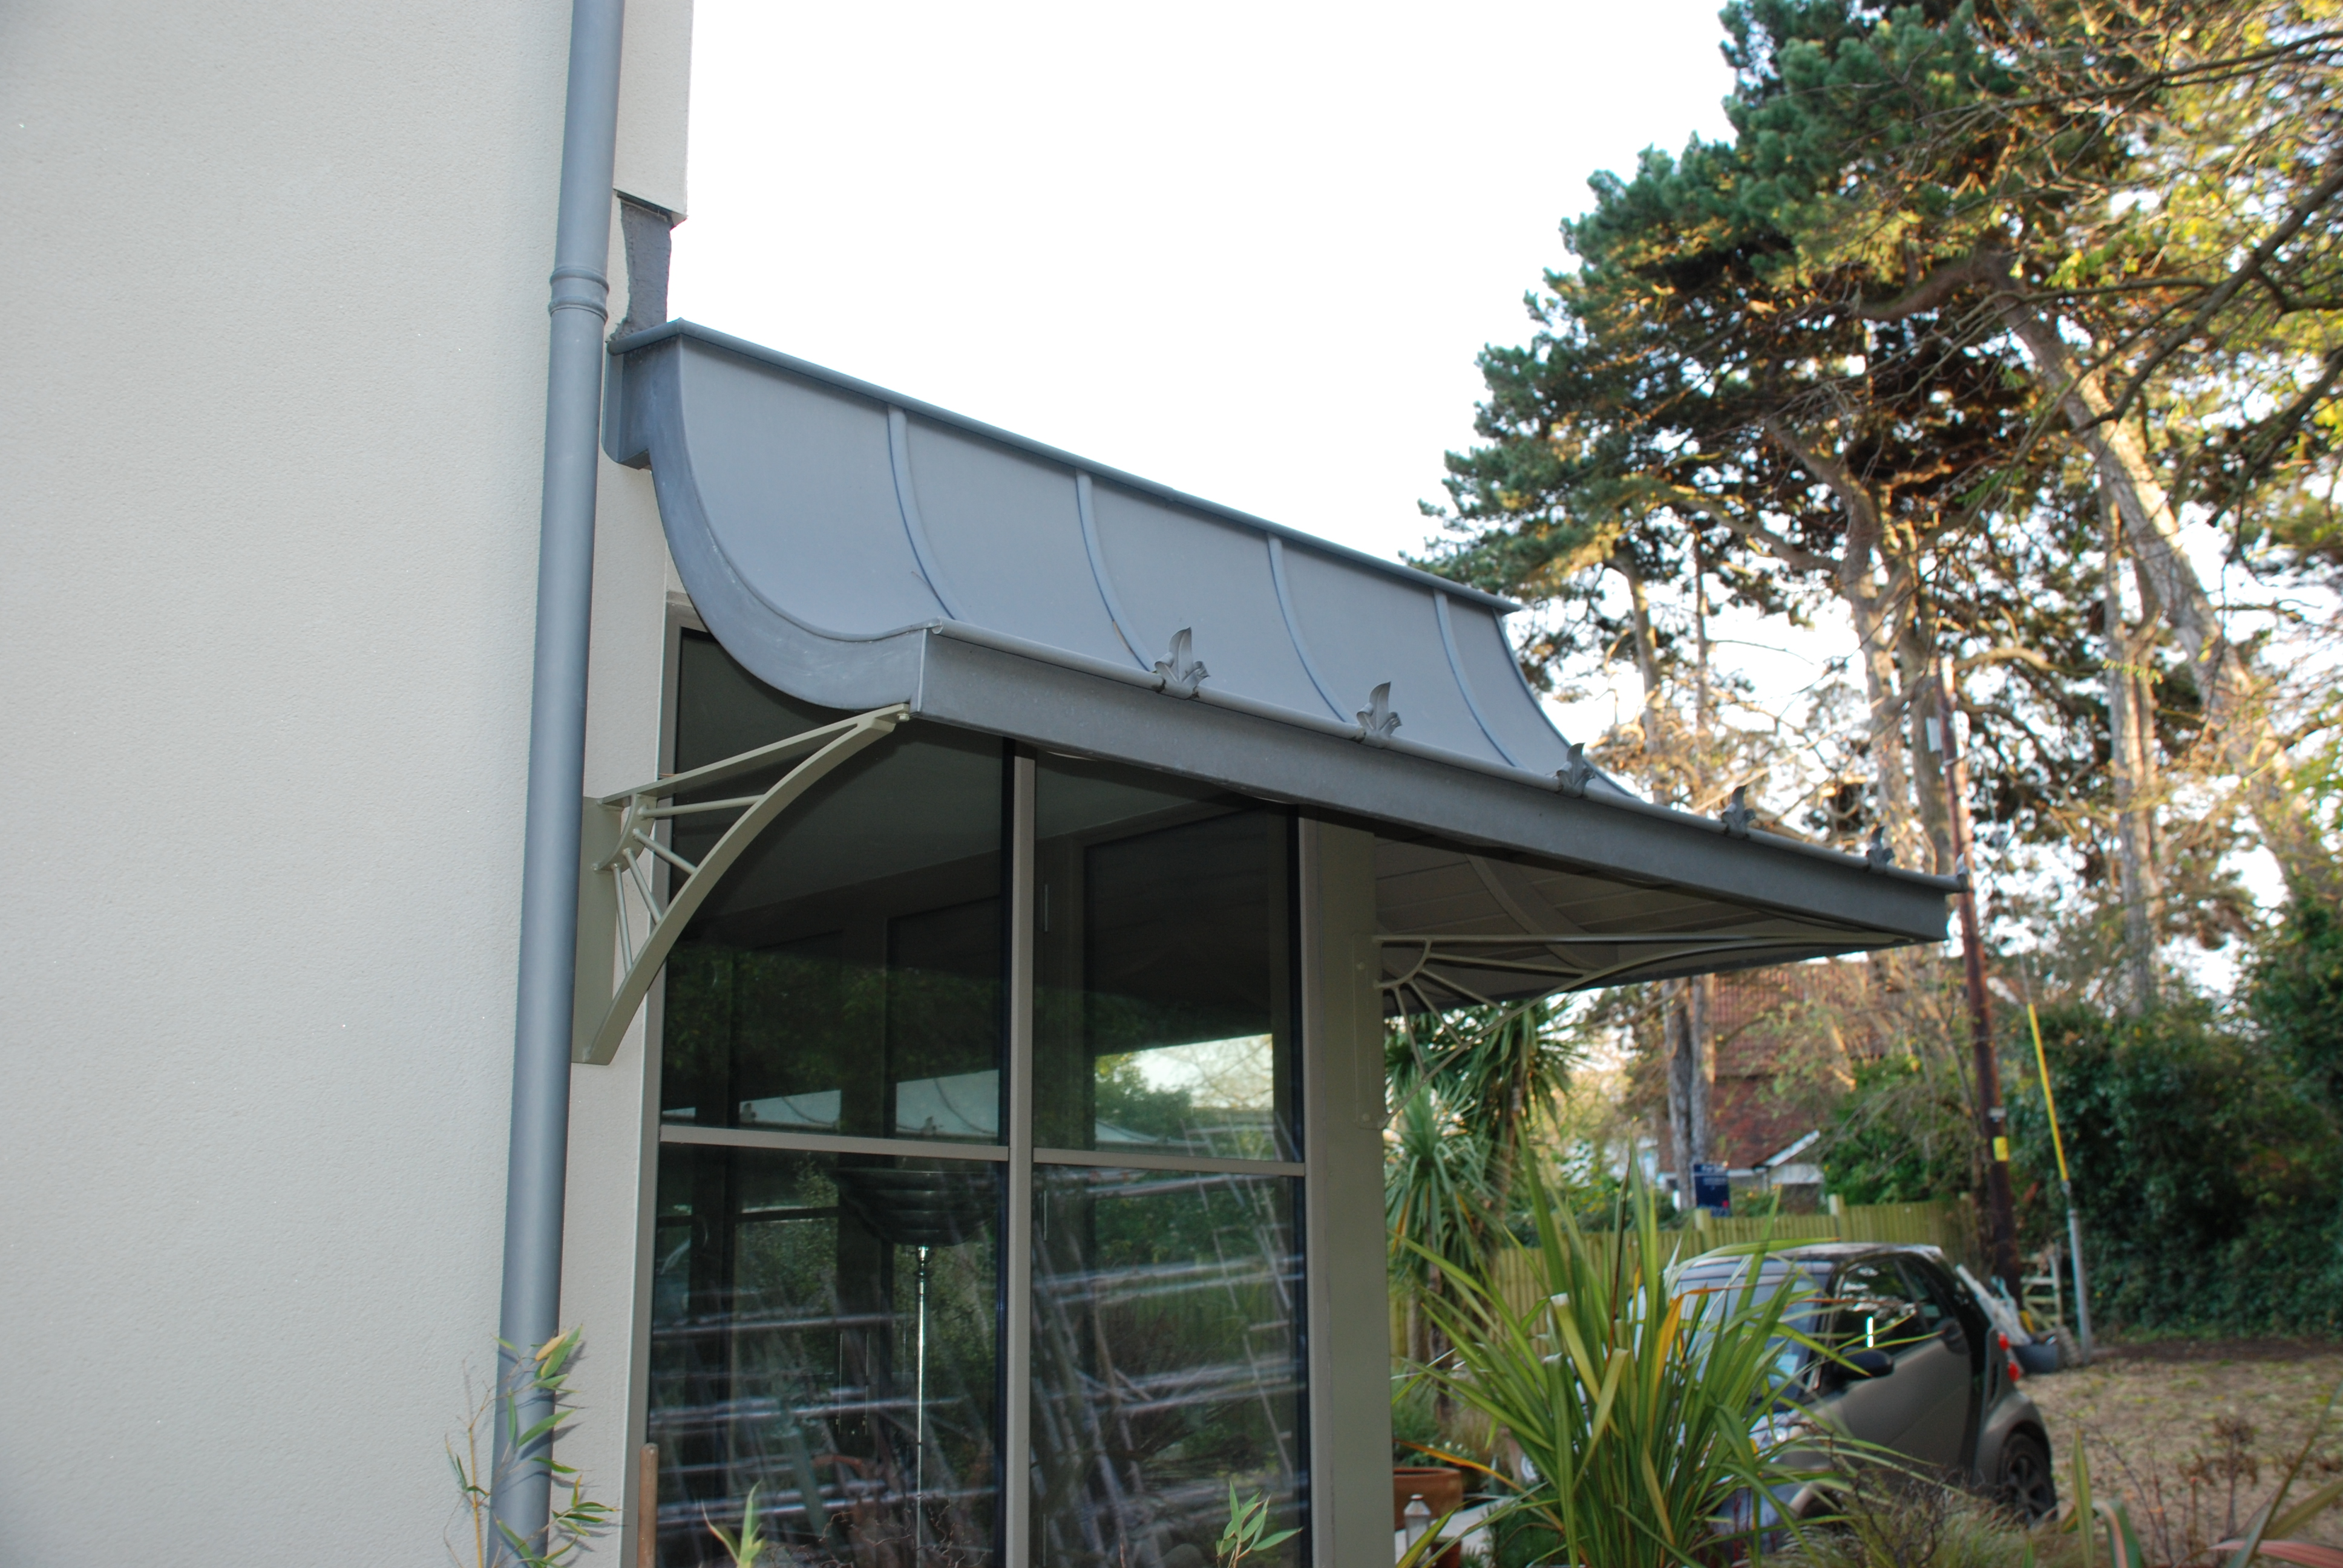 Period Canopy For A Modern House